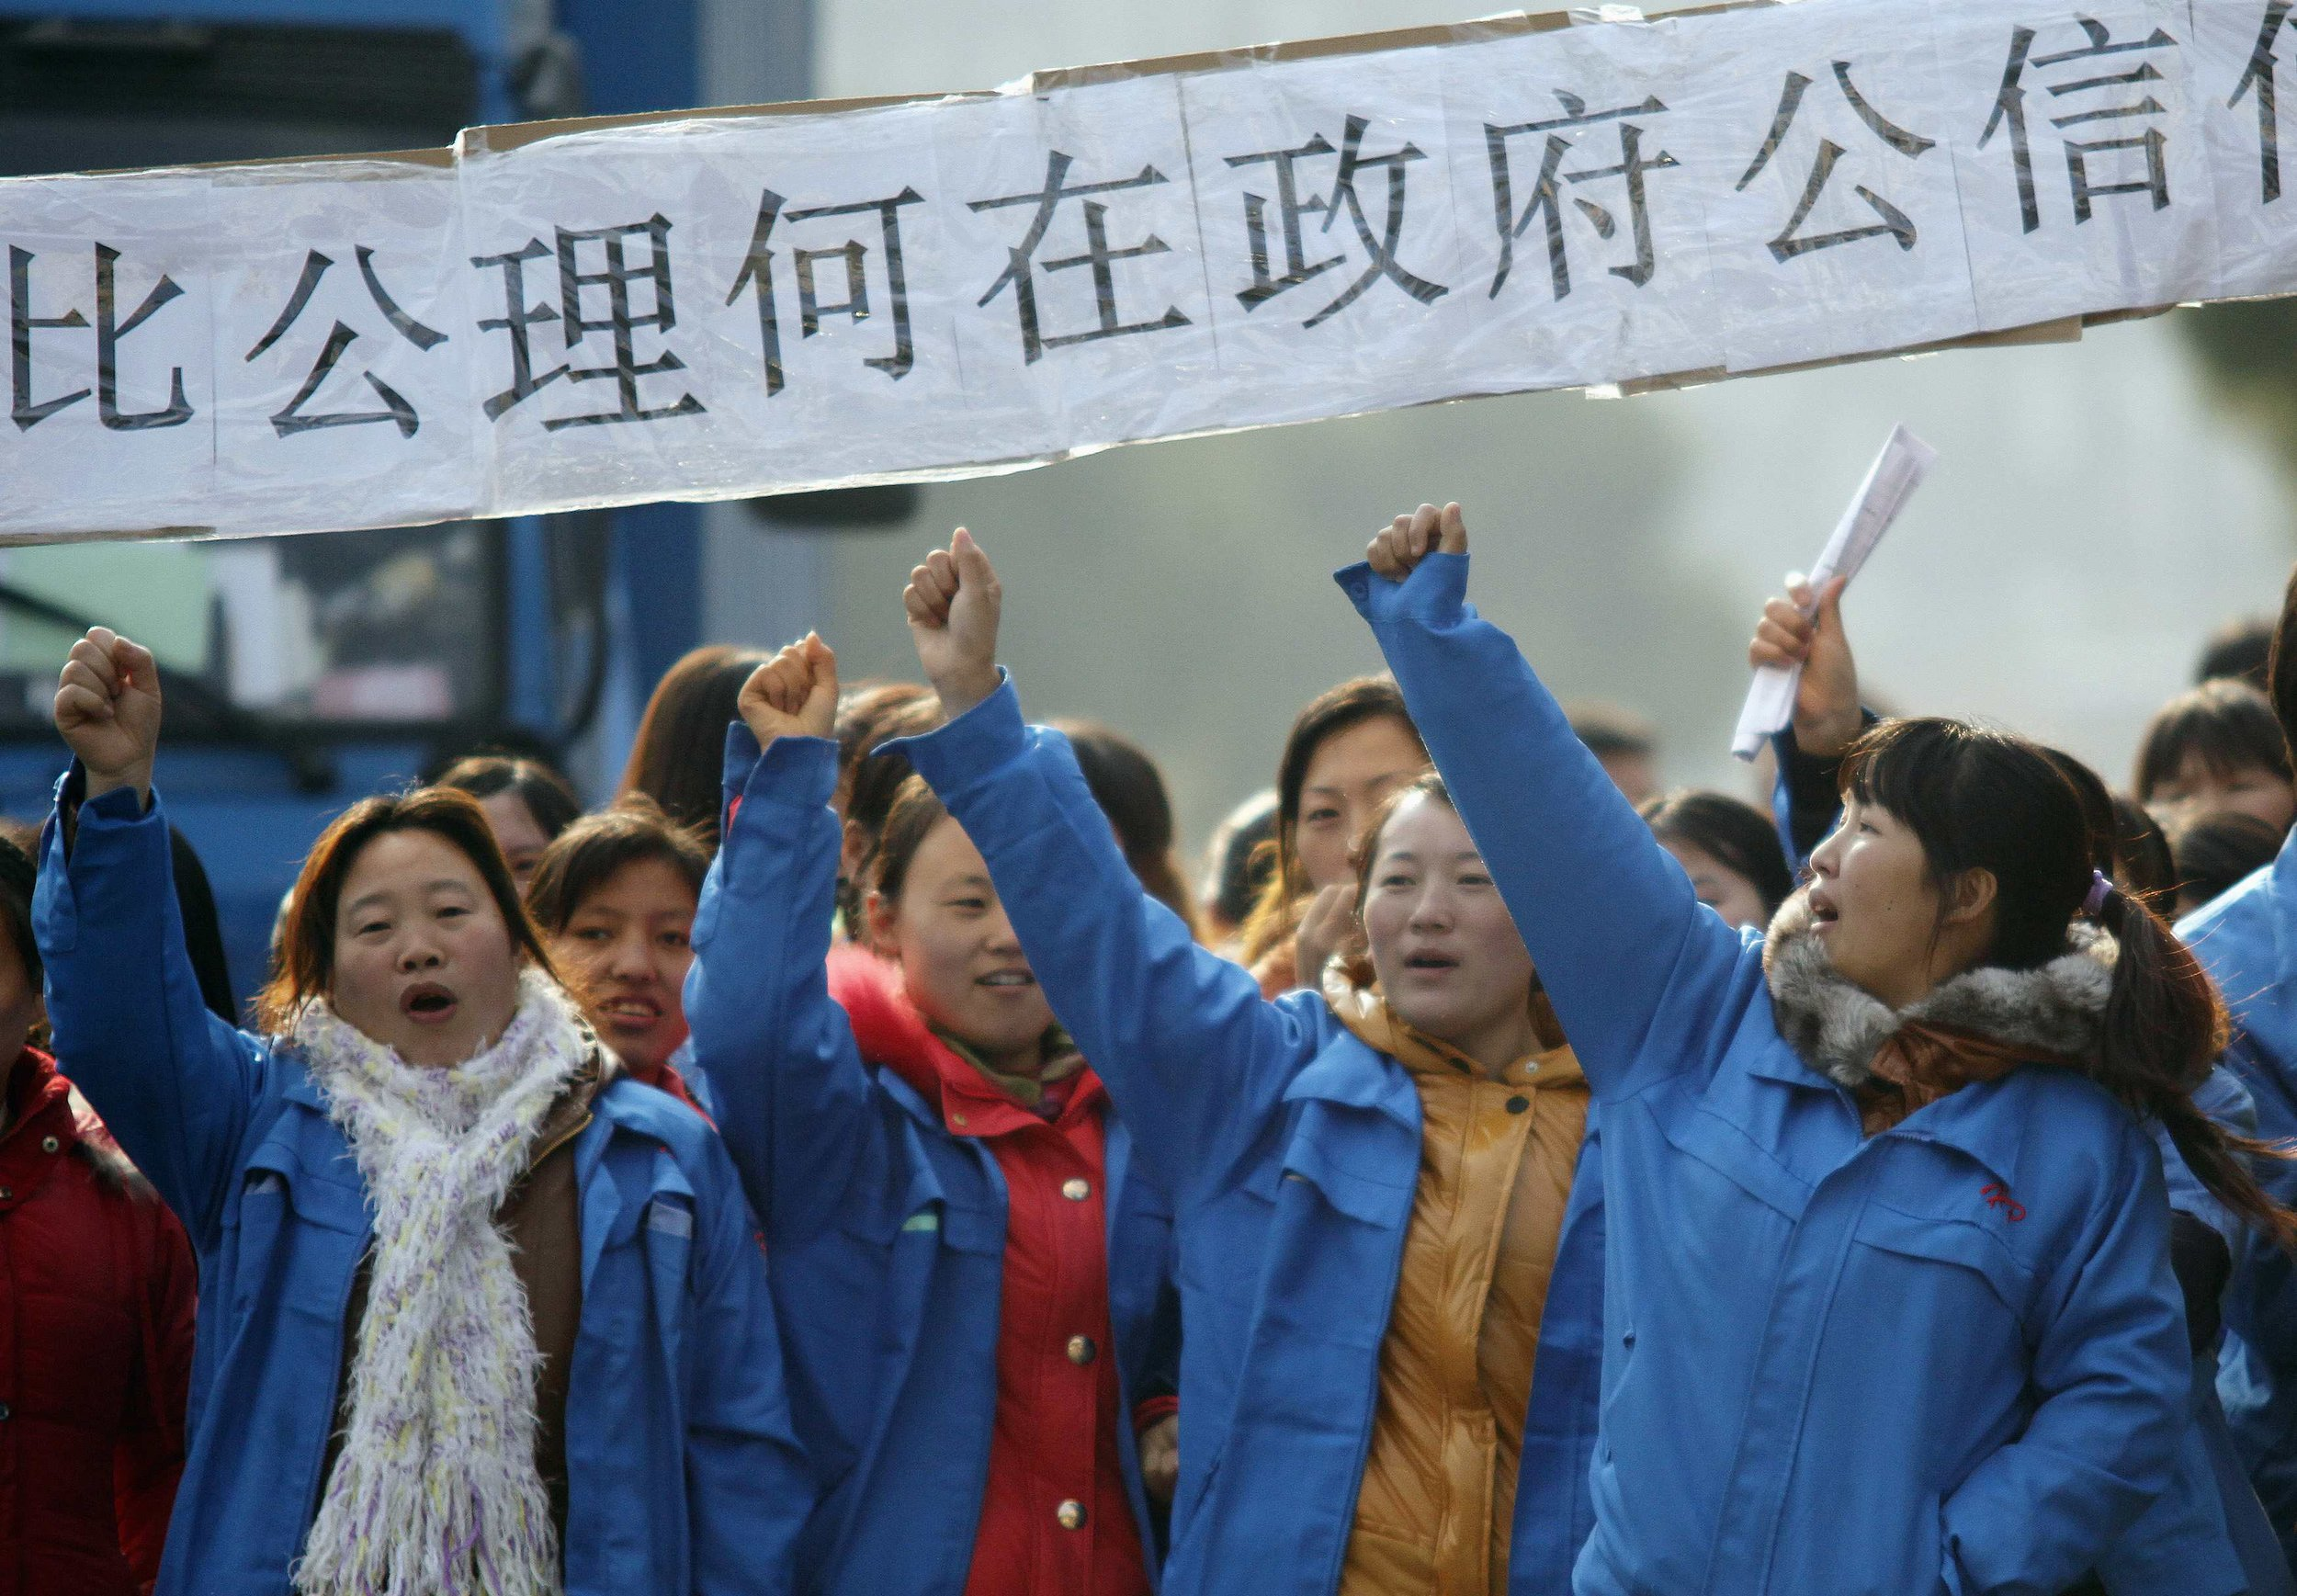 Workers on strike blocking the entrance gate of Hi-P International factory yell slogans during a protest in Shanghai in December 2011. (Reuters/Carlos Barria)